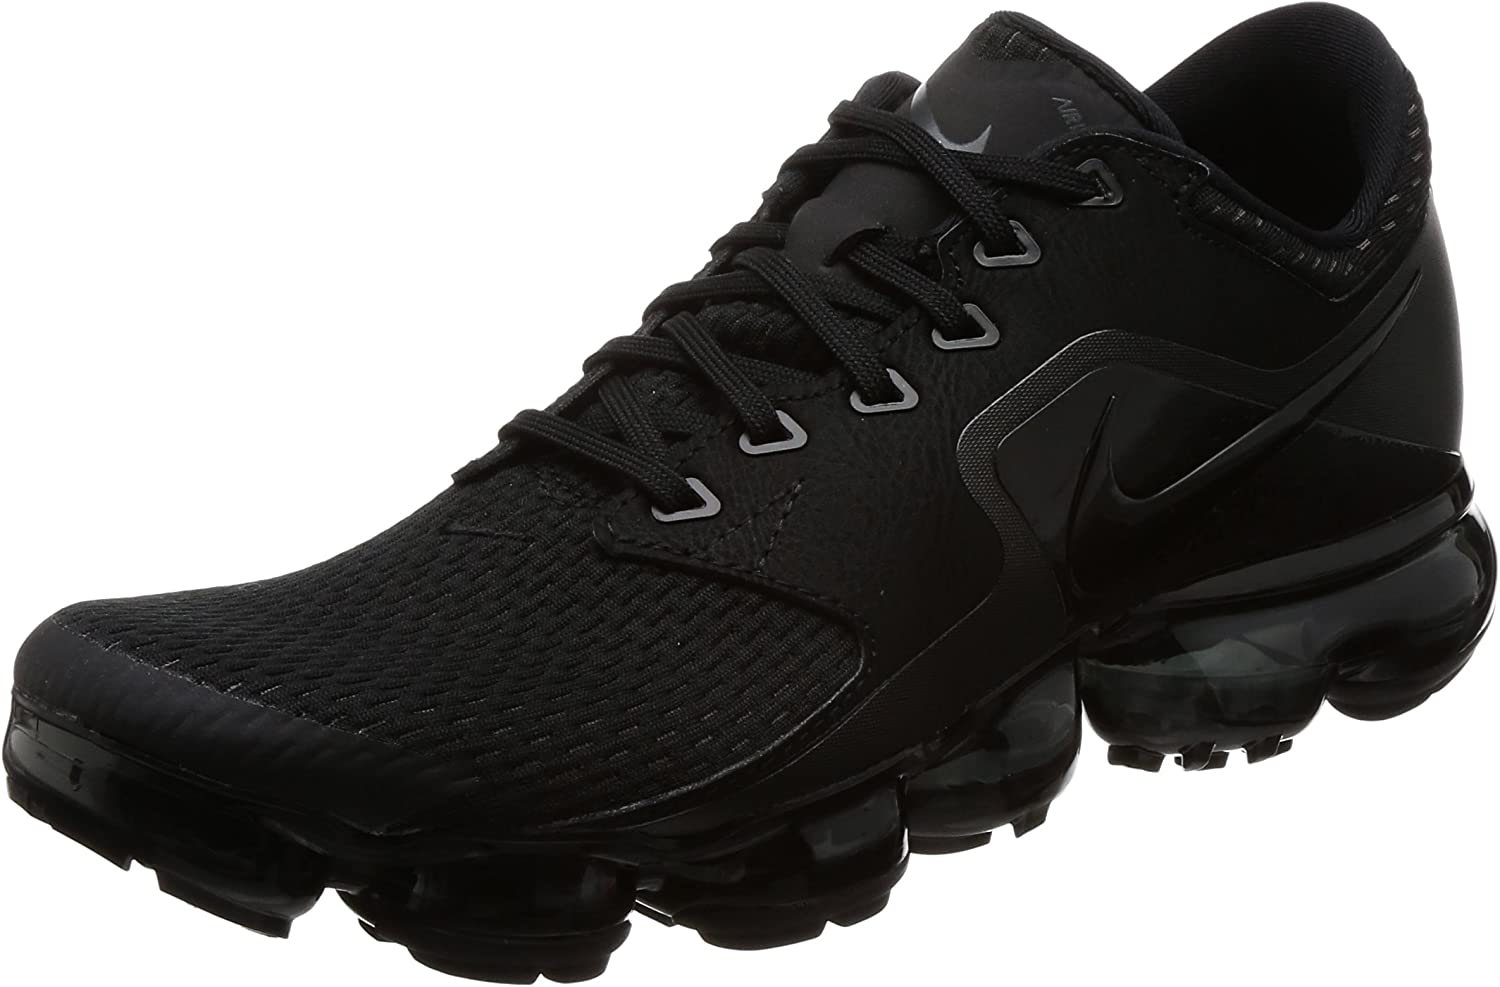 Nike AIR Vapormax Mens Road Running Shoes AH9046-002 Size 8.5 D(M) US 71I641bsByLUL1500_